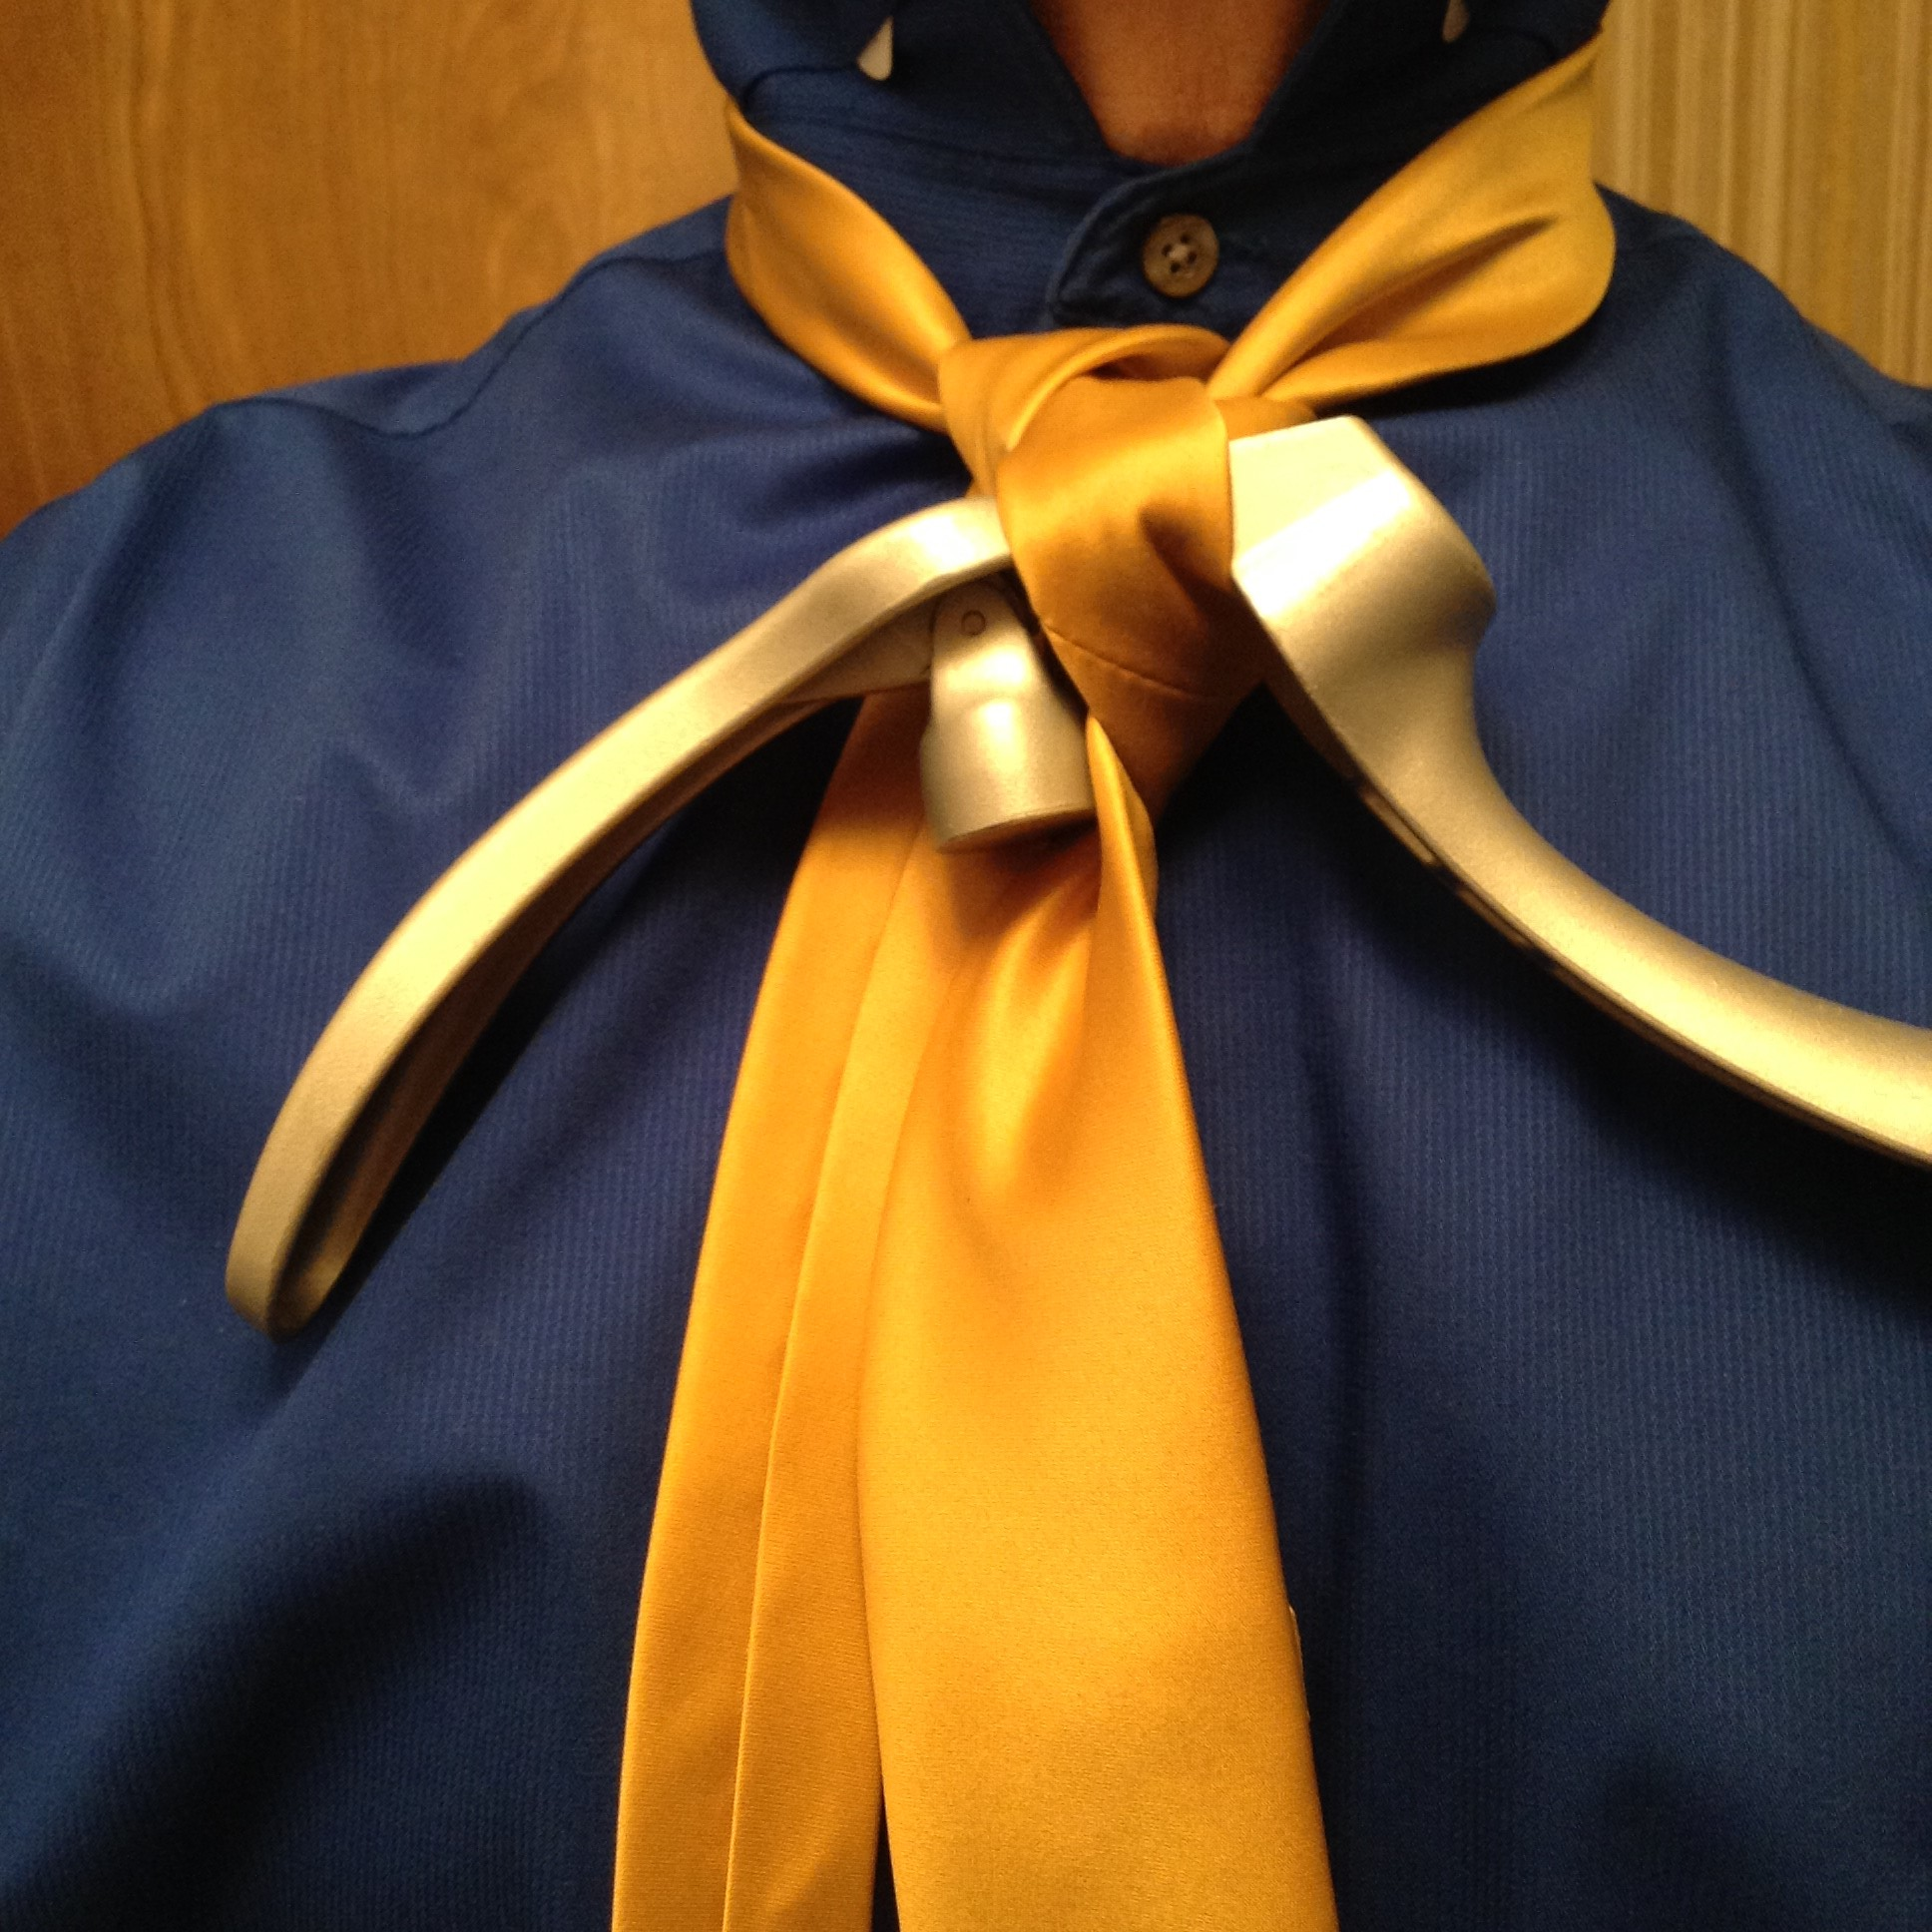 image gallery eldredge knot